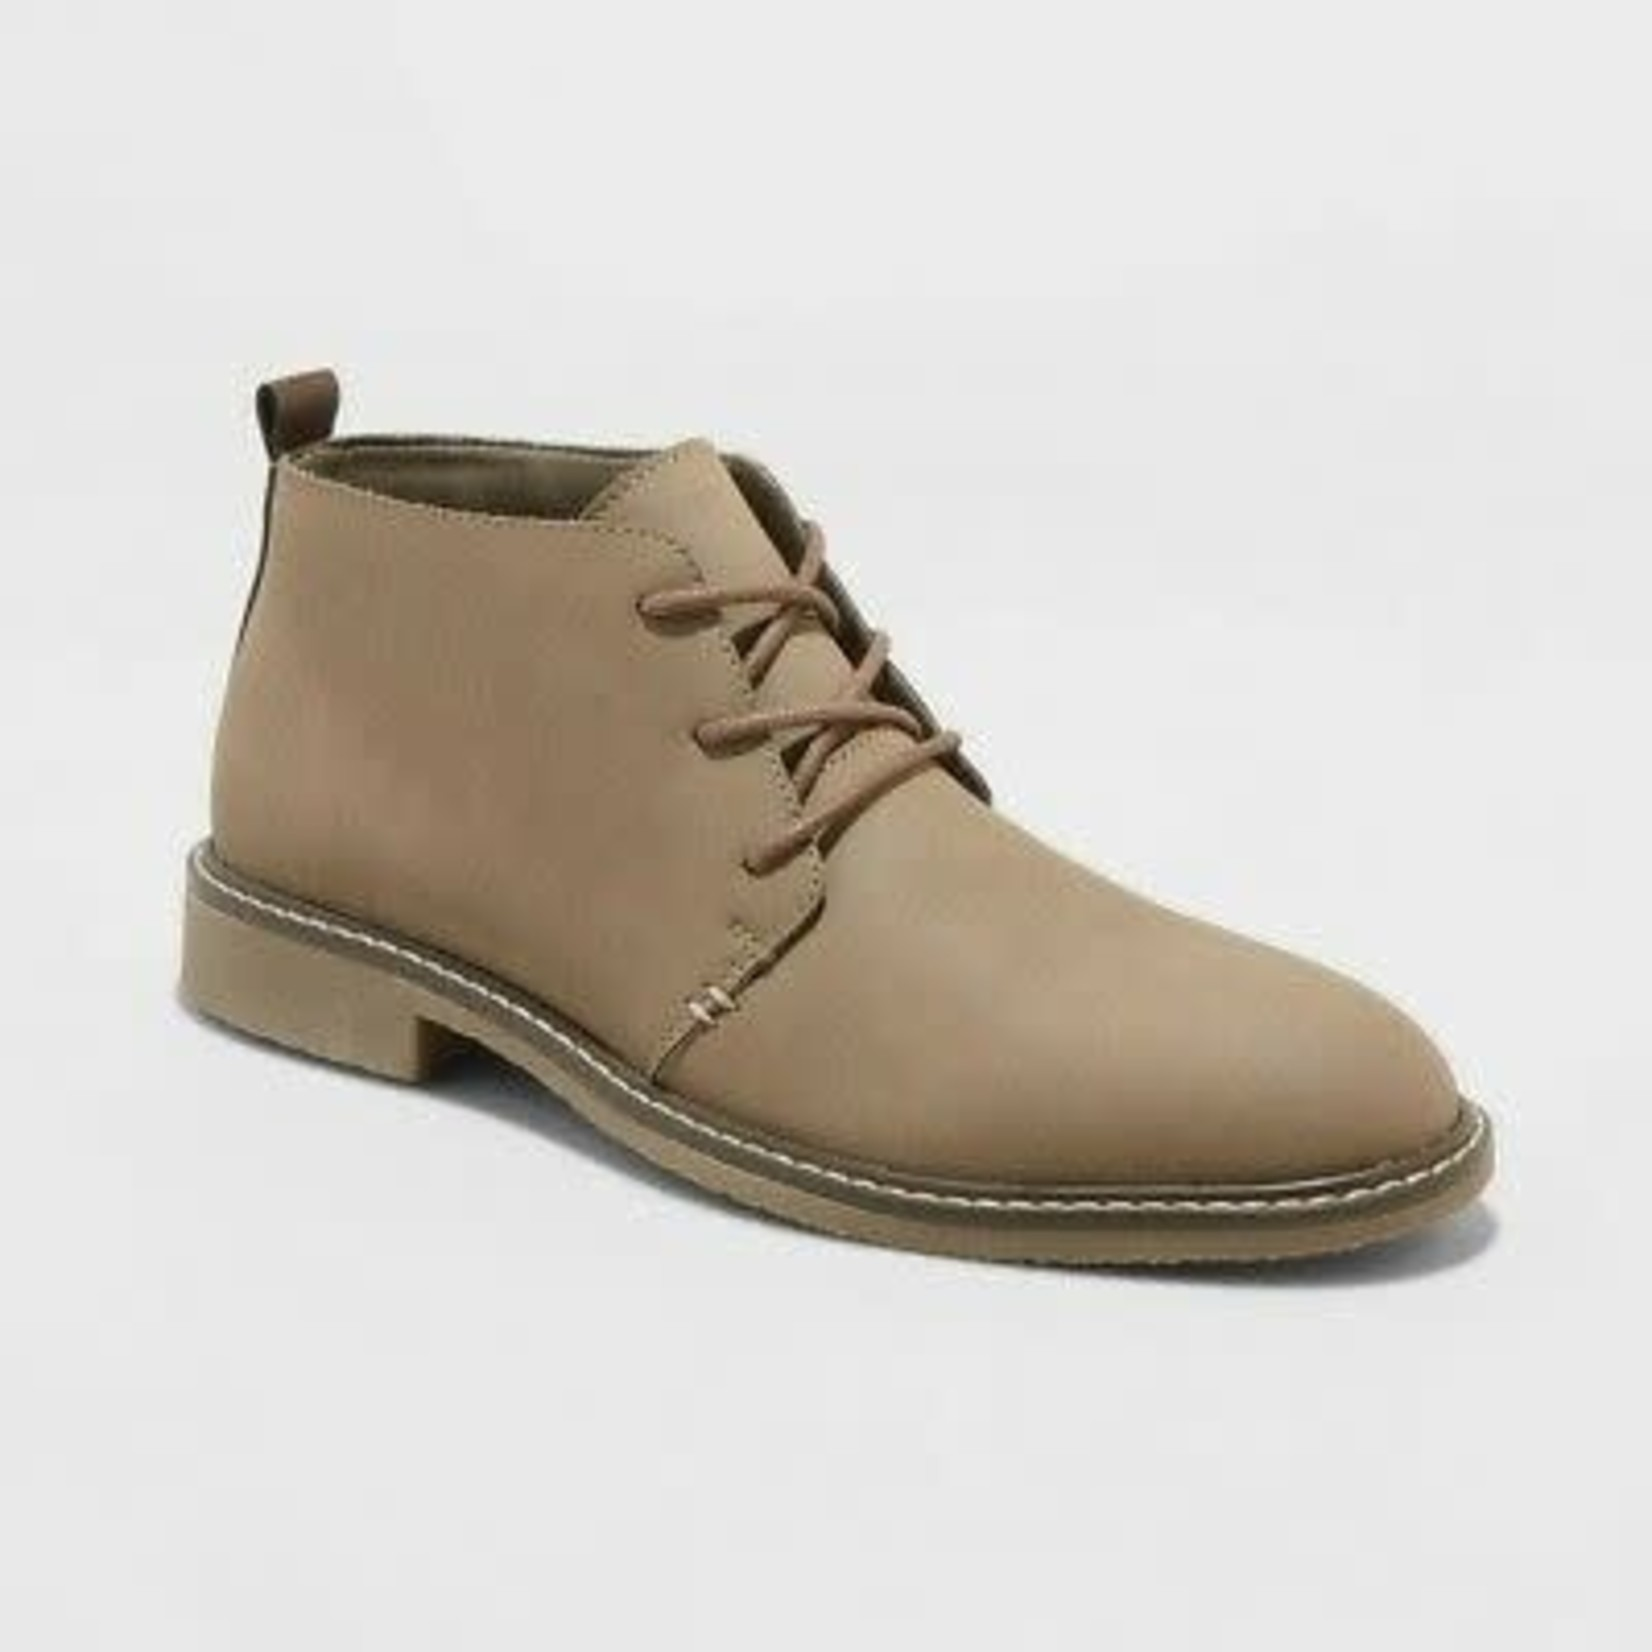 Goodfellow Men's Jahlin Boots Taupe -11.5